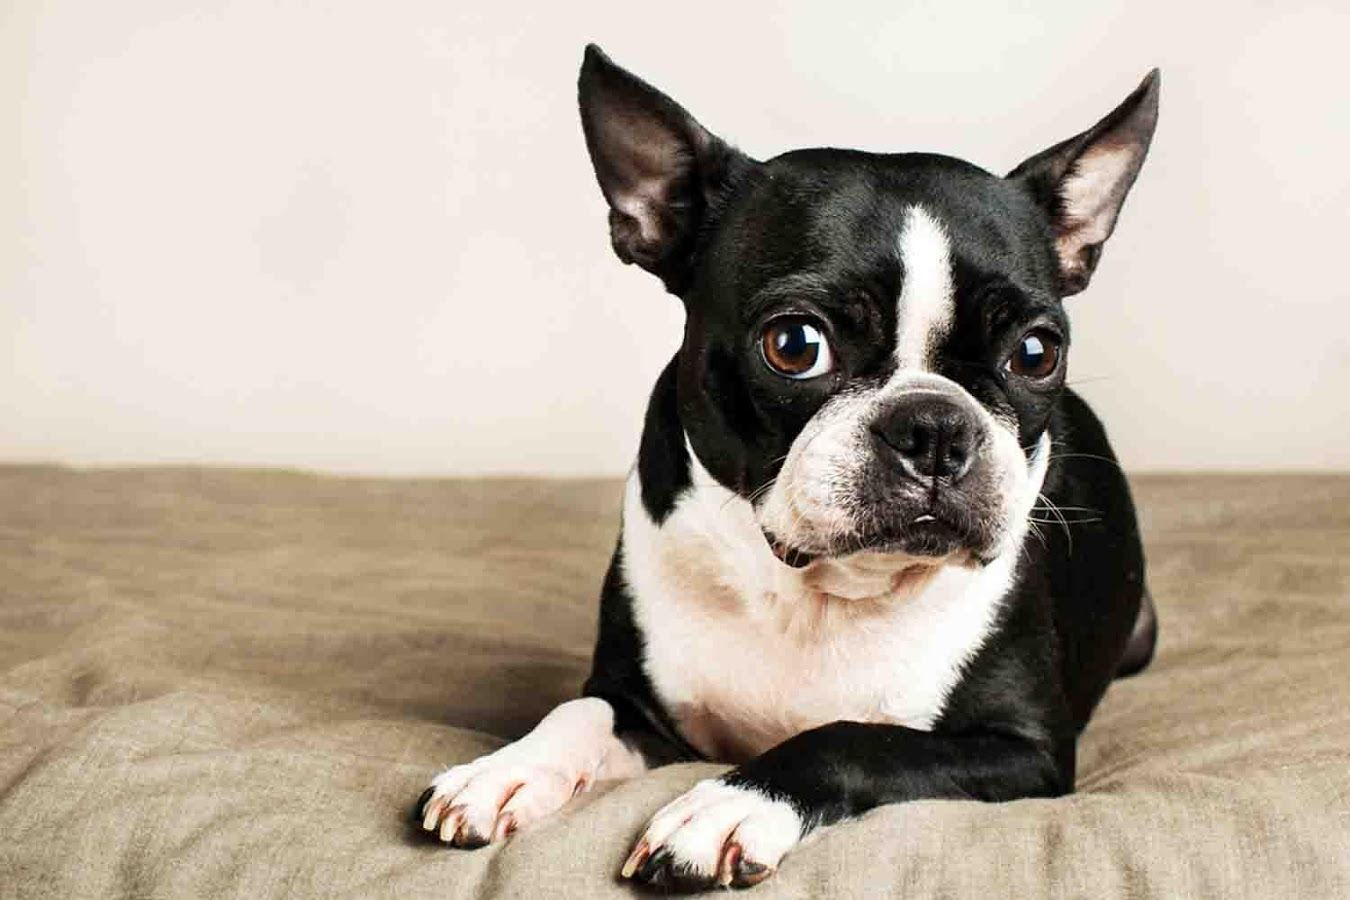 Boston Terrier Wallpapers - Android Apps on Google Play